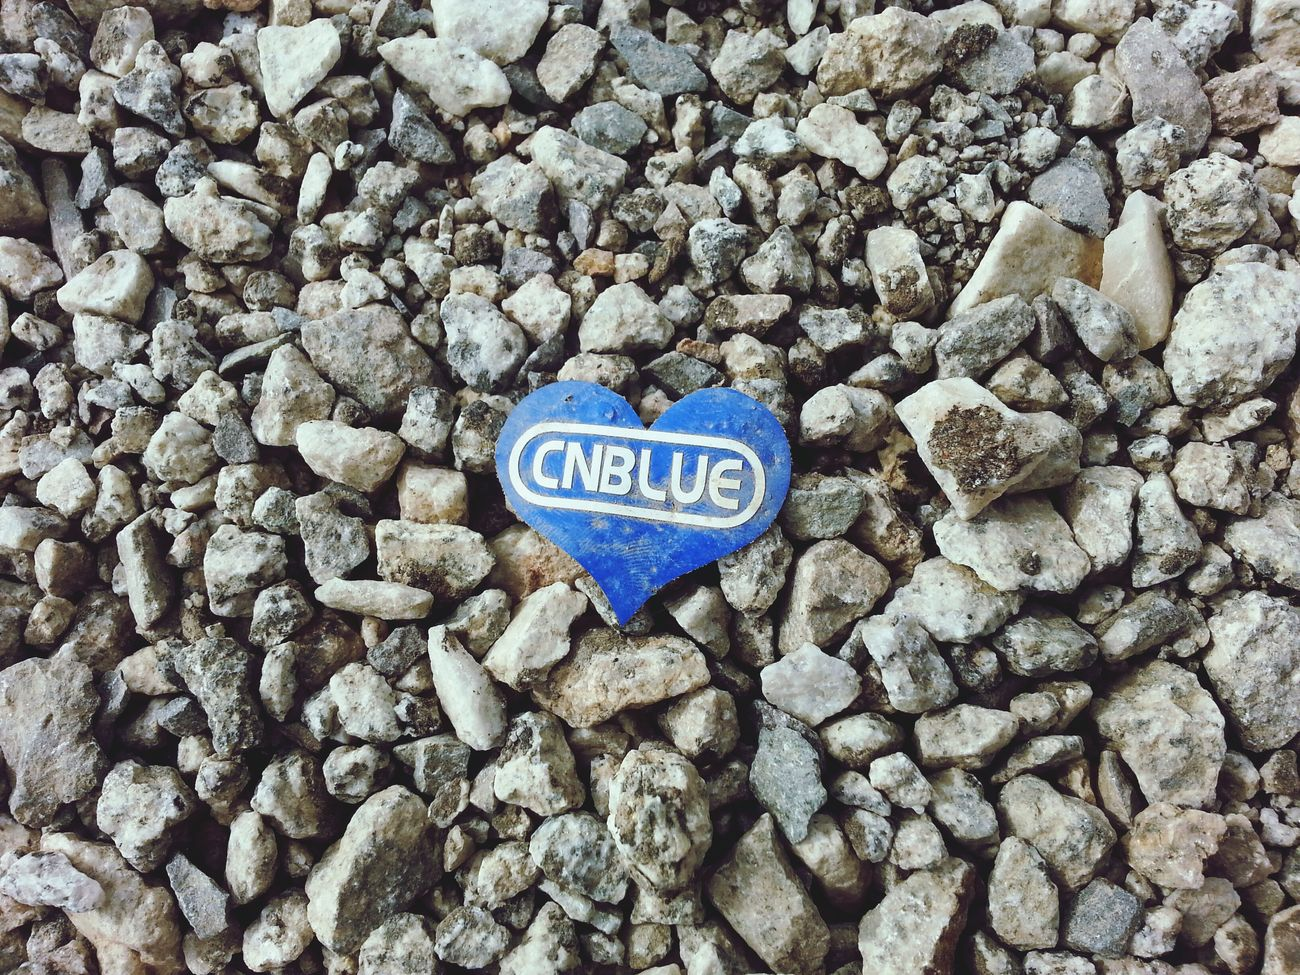 Textures And Surfaces A forgotten heart the day after cnblue's show Floors Things On The Floor Pebbles